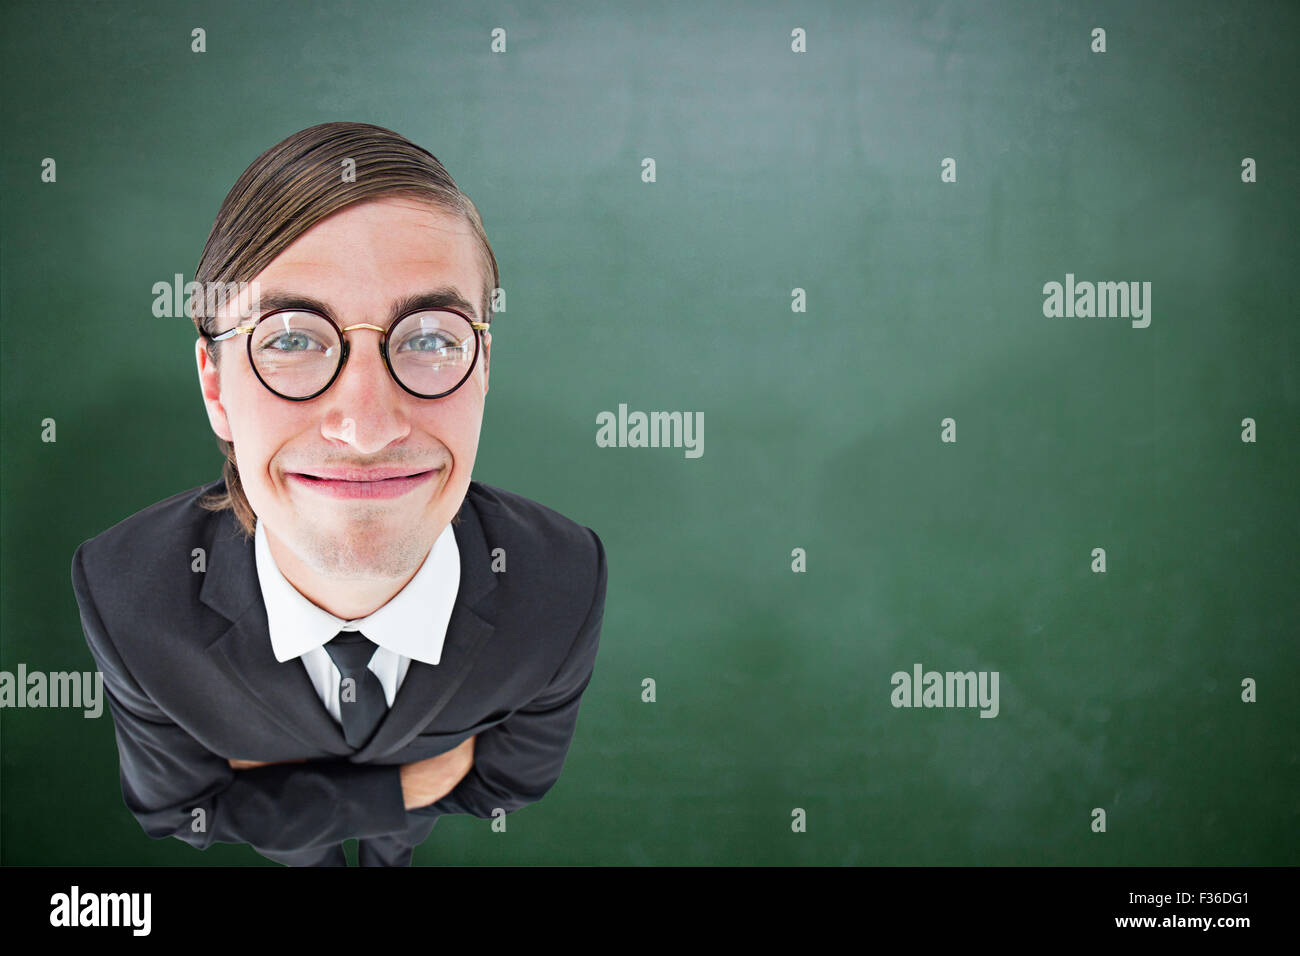 Composite image of geeky businessman smiling at camera - Stock Image